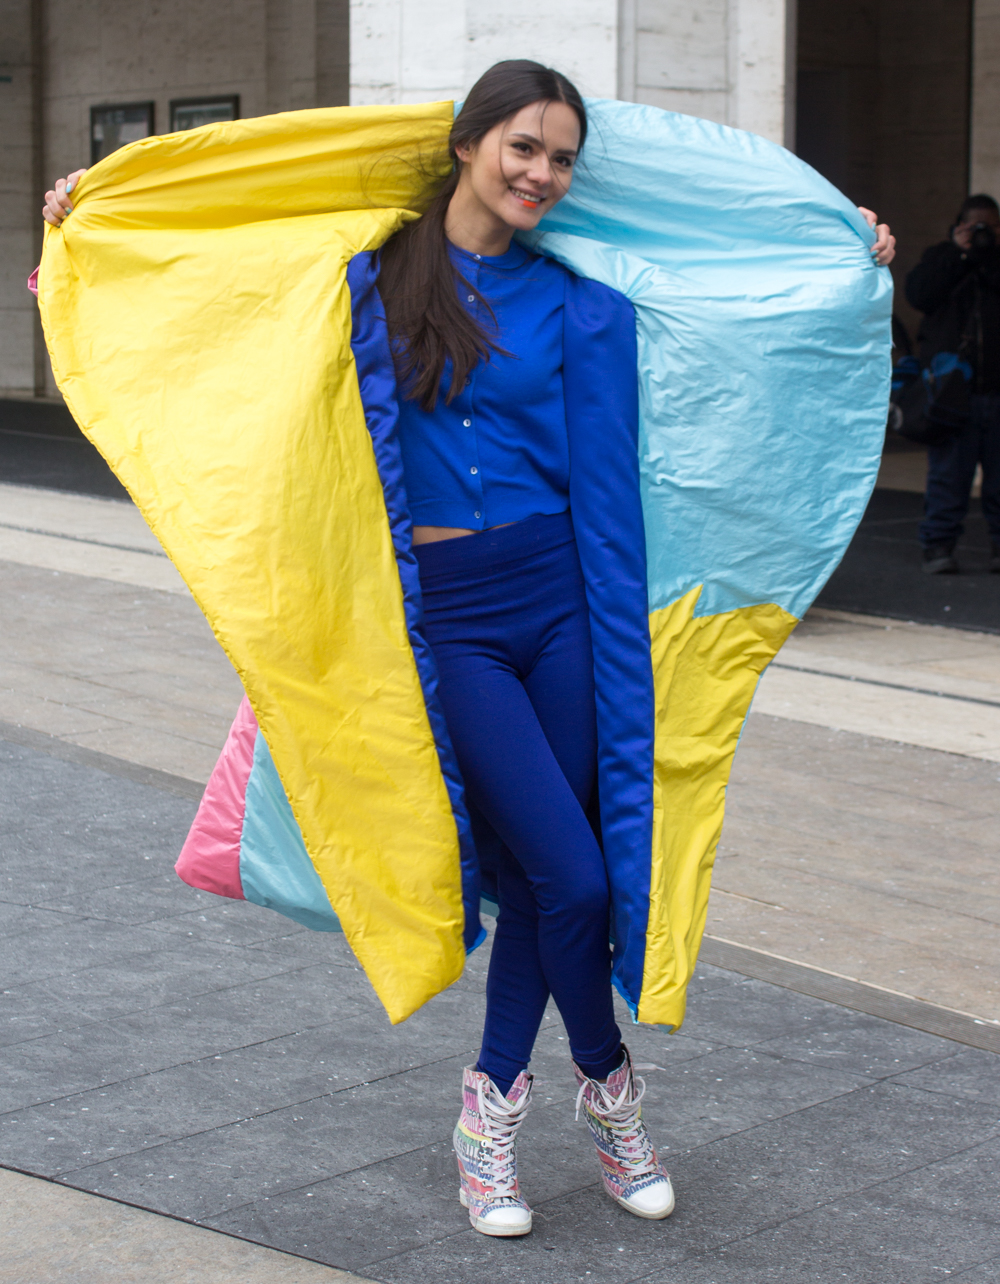 This Girl Managed to Make a Sleeping Bag Look Fashionable at NYFW